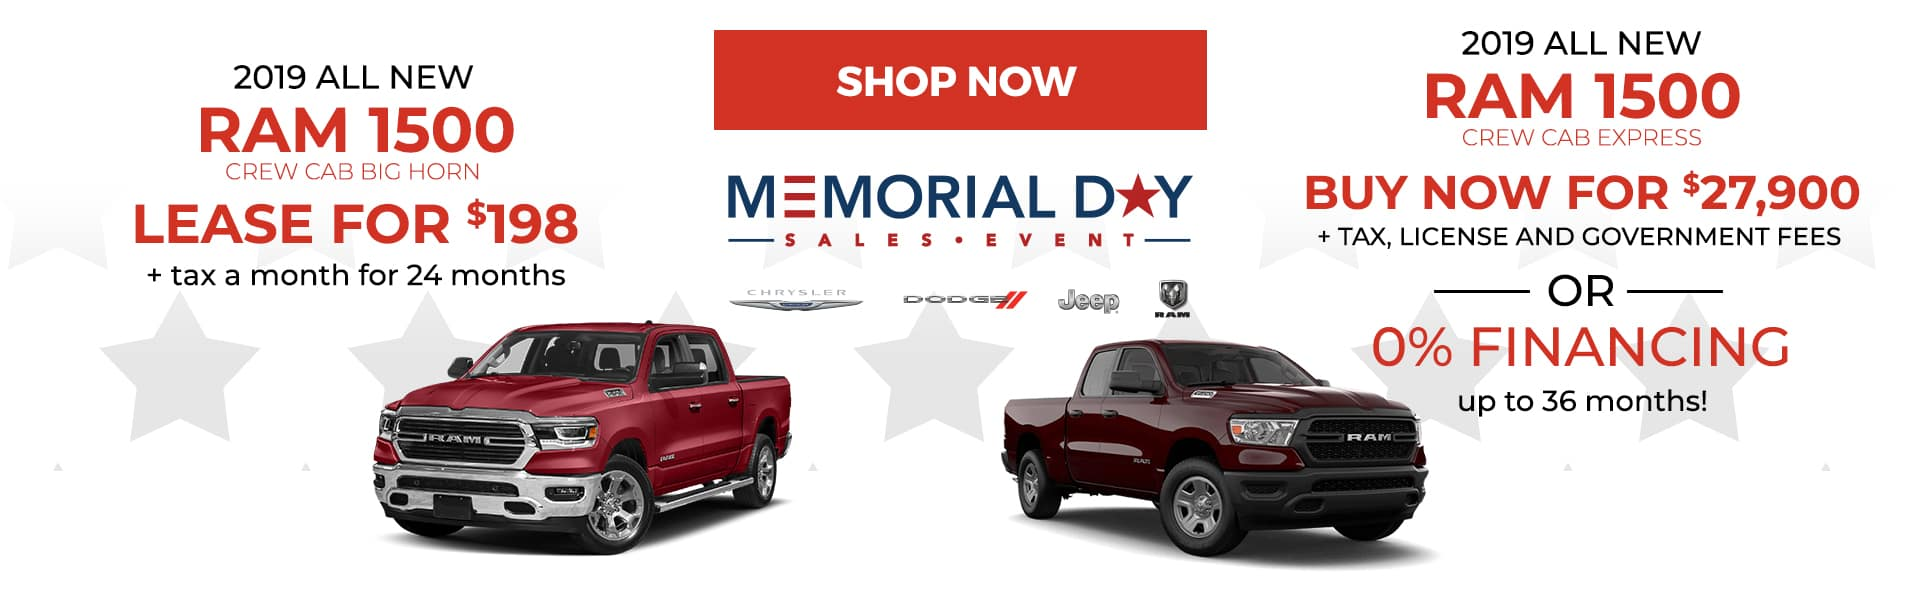 RAM 1500 Memorial Day Offers